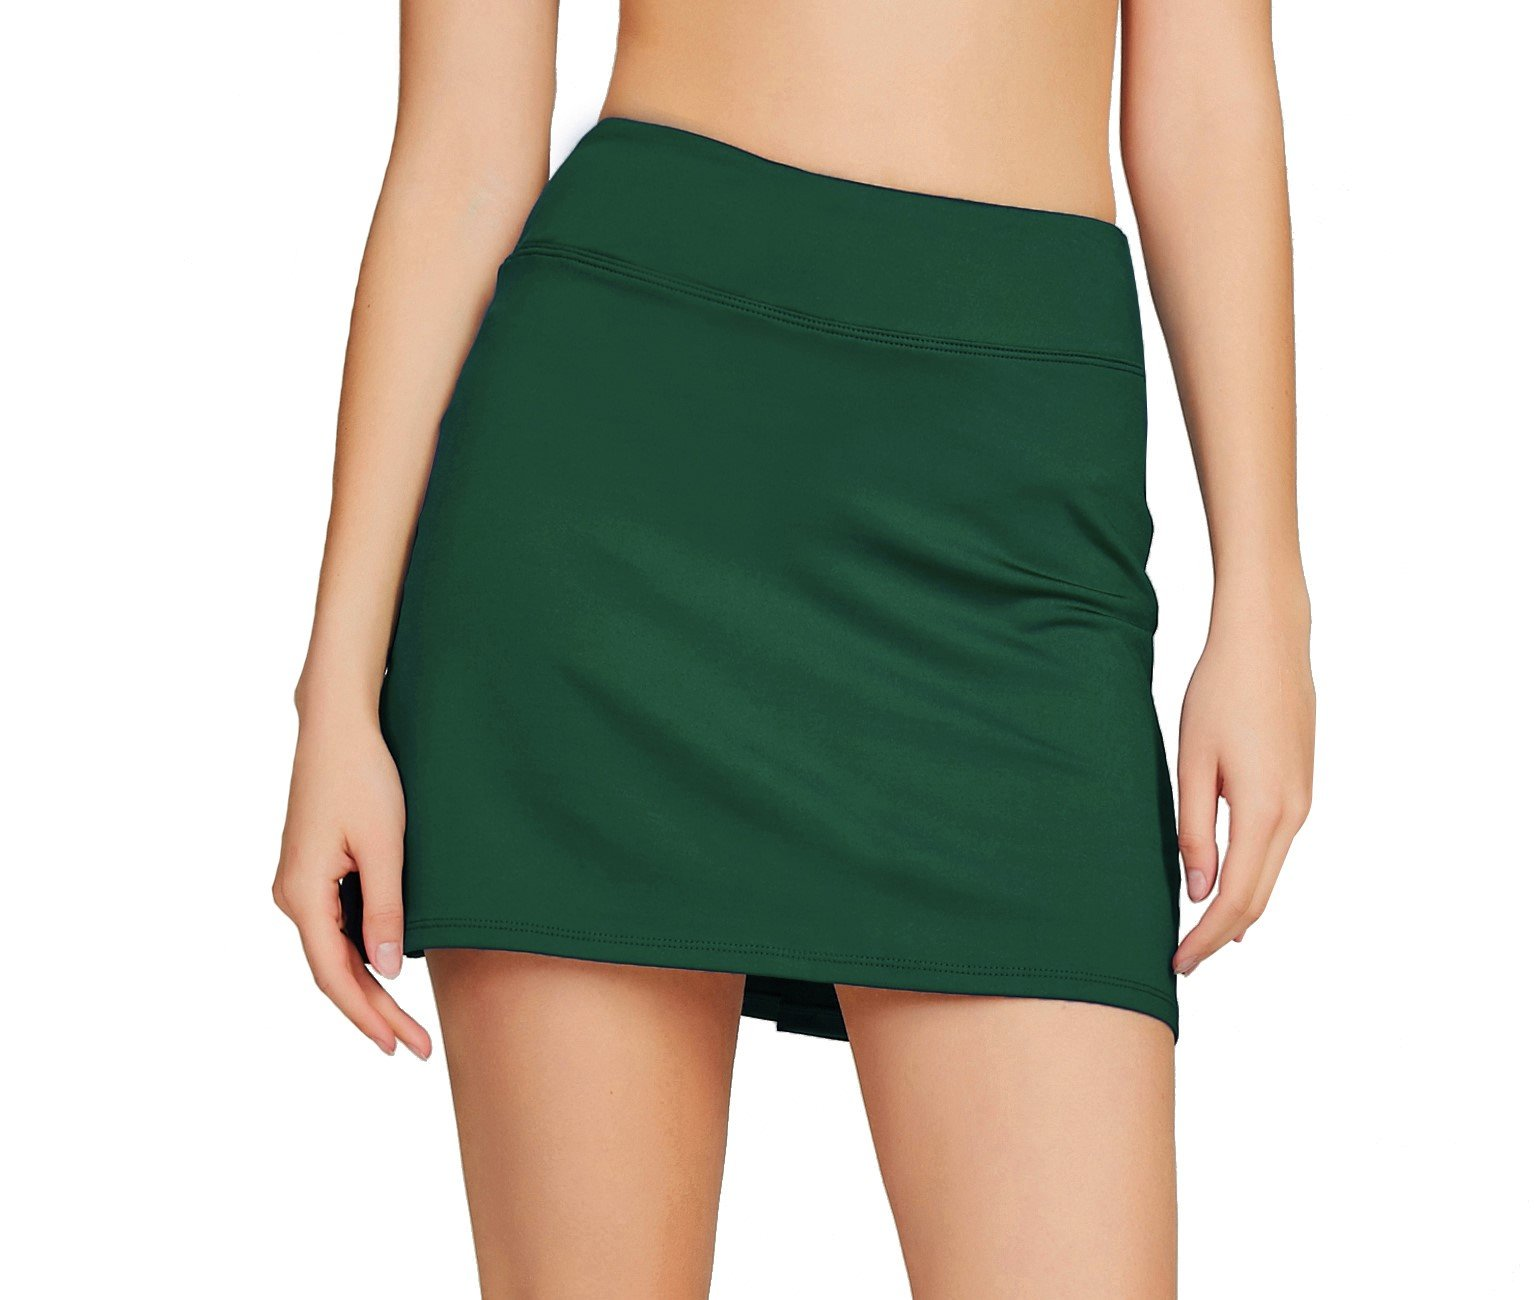 Cityoung Women's Casual Pleated Tennis Golf Skirt with Underneath Shorts Running Skorts d_gn xs